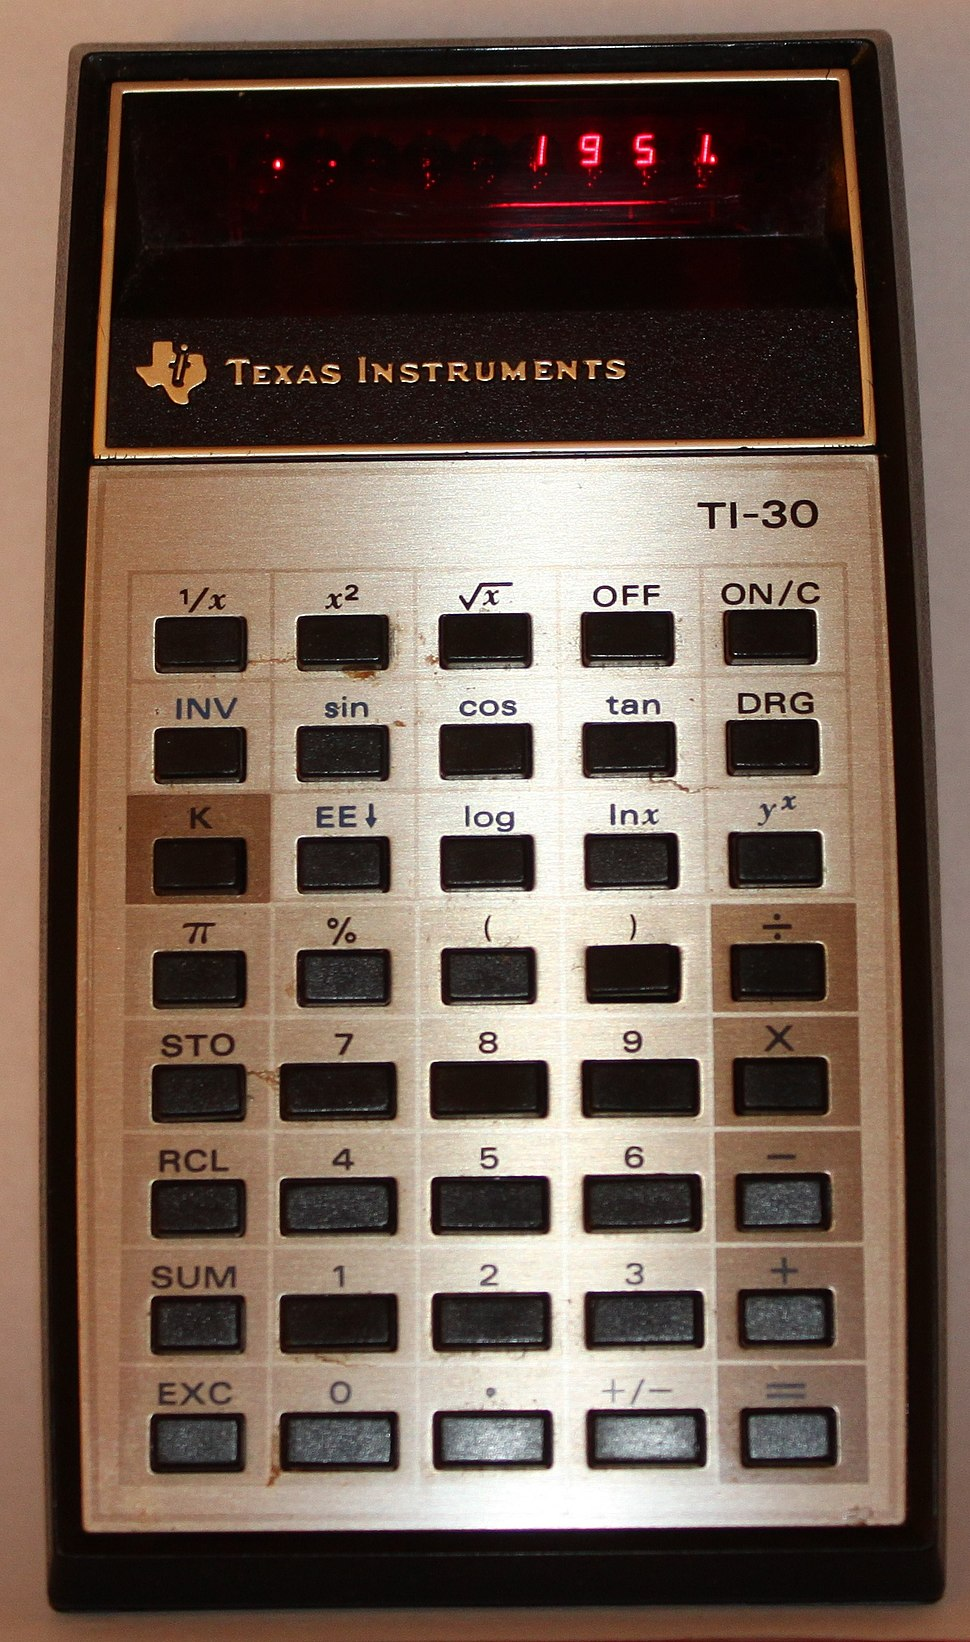 Texas Instruments TI-30 electronic calculator